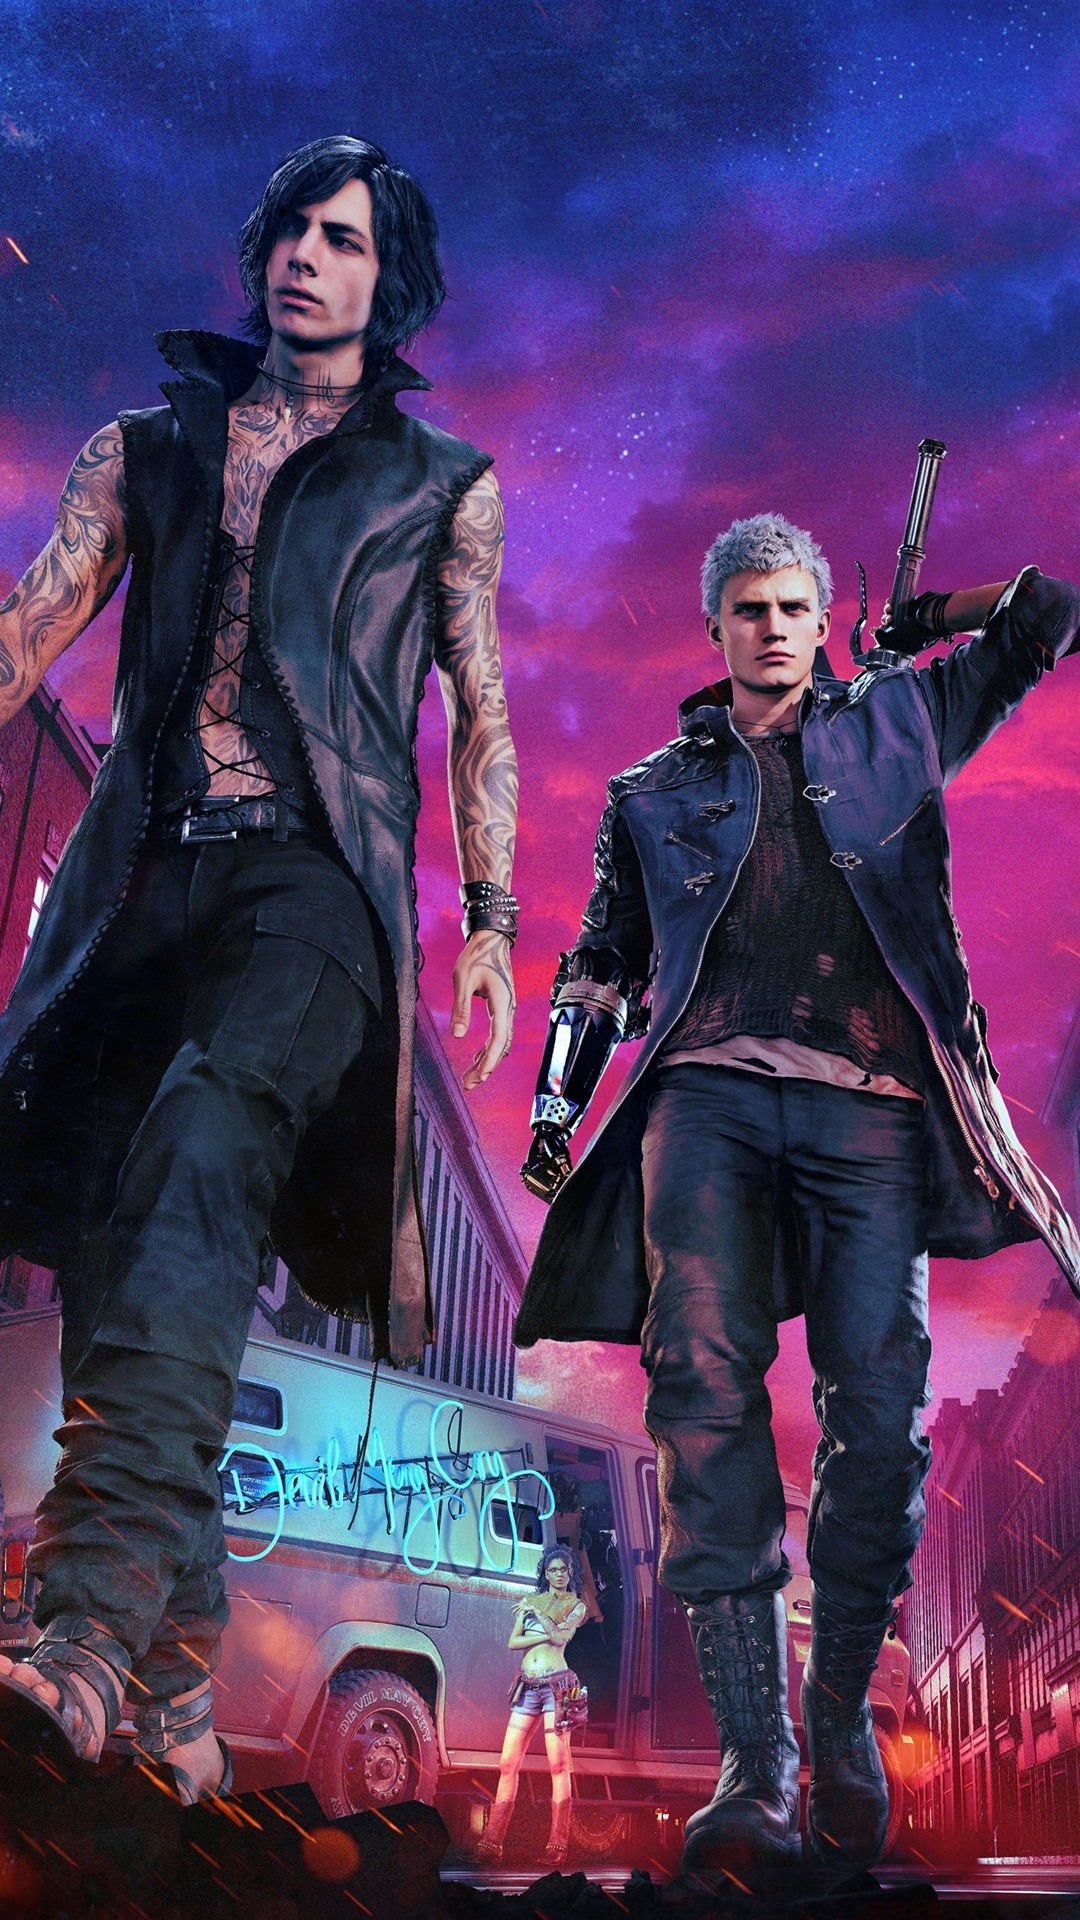 Devil May Cry 5 Ps4 Game 1242x26 Iphone 11 Pro Xs Max Wallpaper Background Picture Image